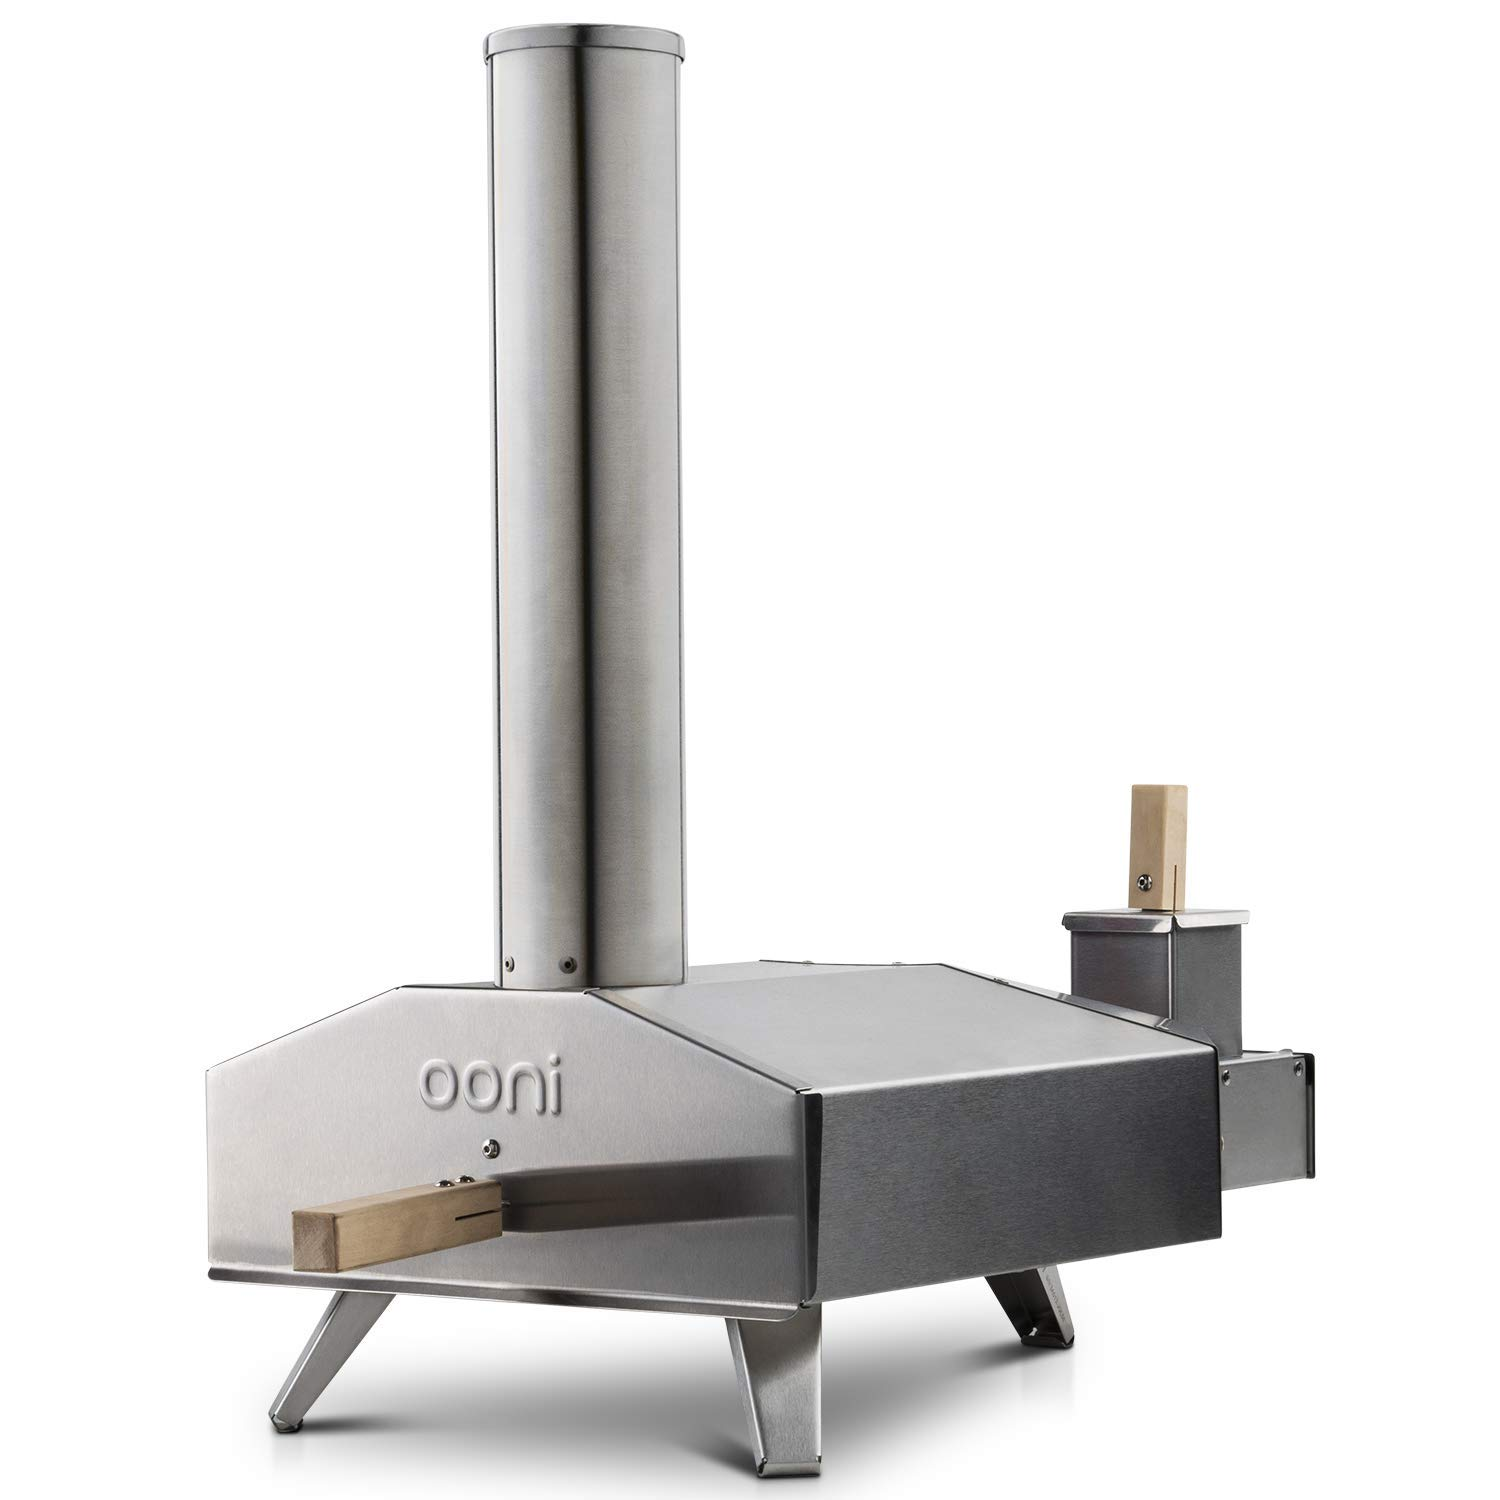 Oni 3 Outdoor Pizza Oven